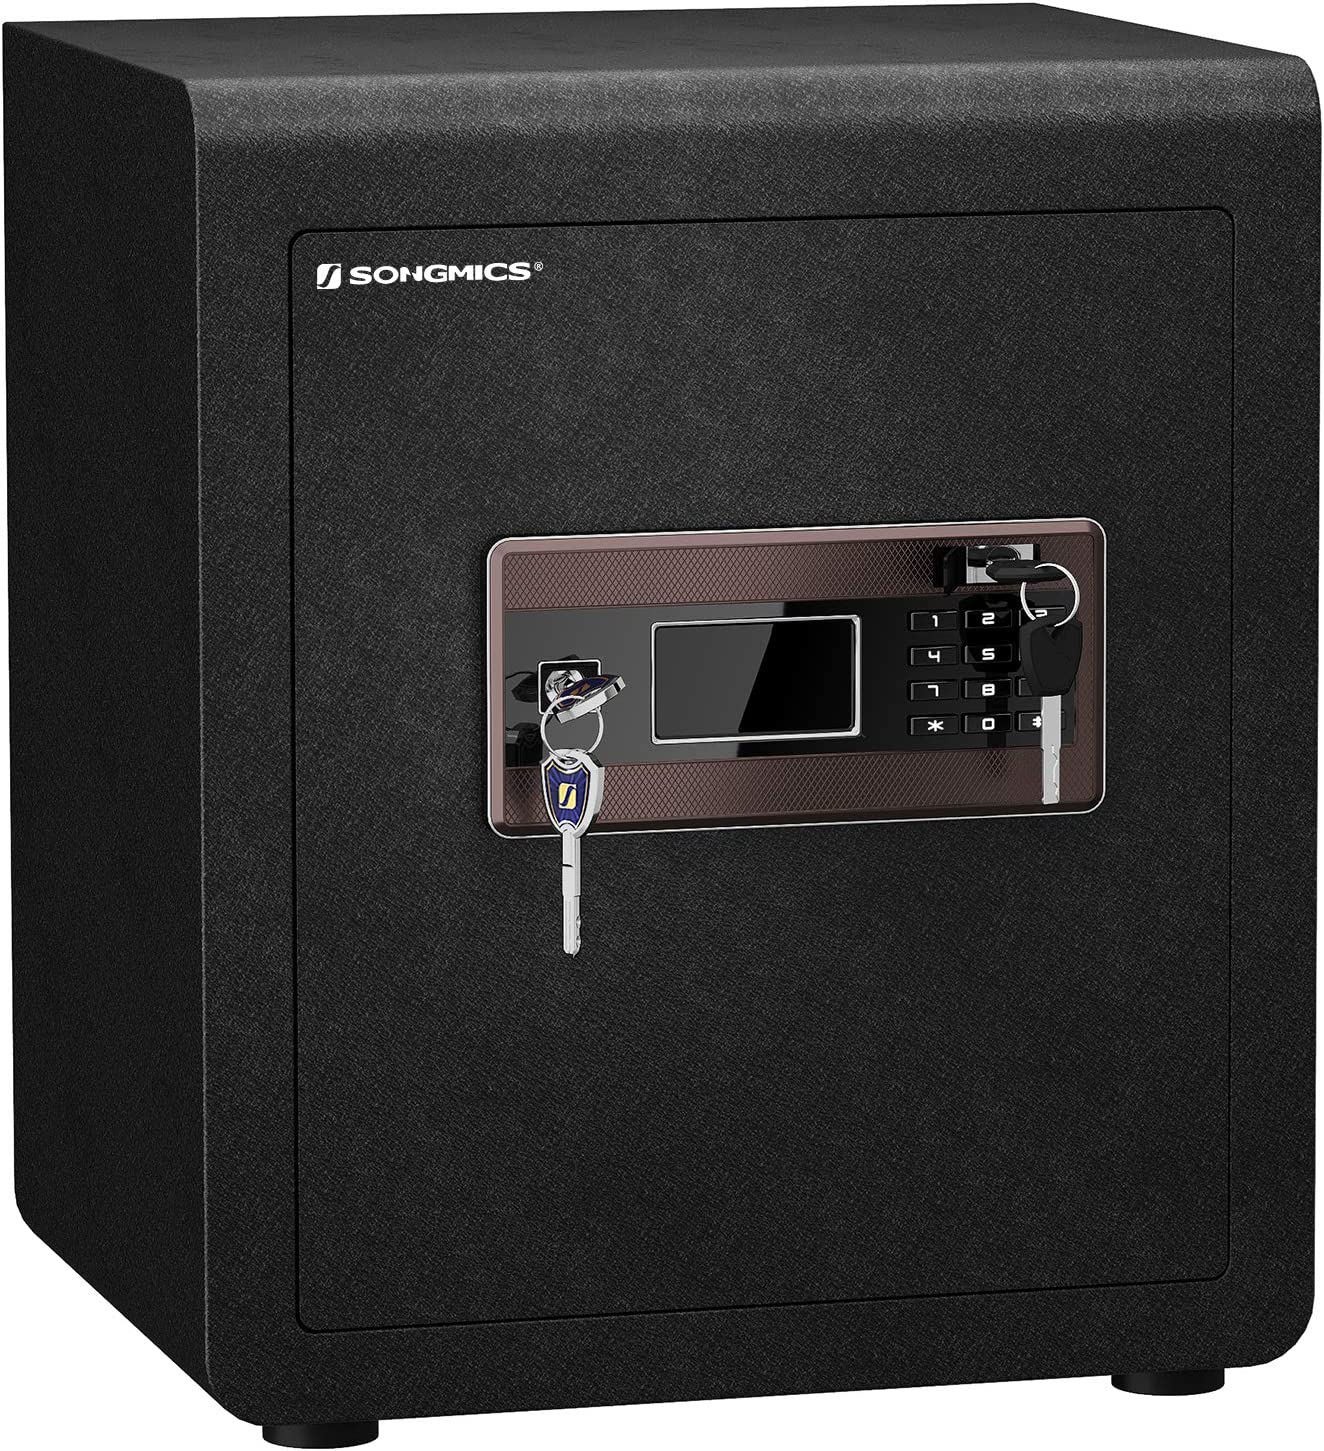 SONGMICS Safe Box, Security Safe, 1.6 Cubic Feet, Dual Locking System, with Digital Keypad, Manual Override, Adjustable Divider, Alarm Function, Anti-Theft, for Home Office Hotel, Black ULBX115B01